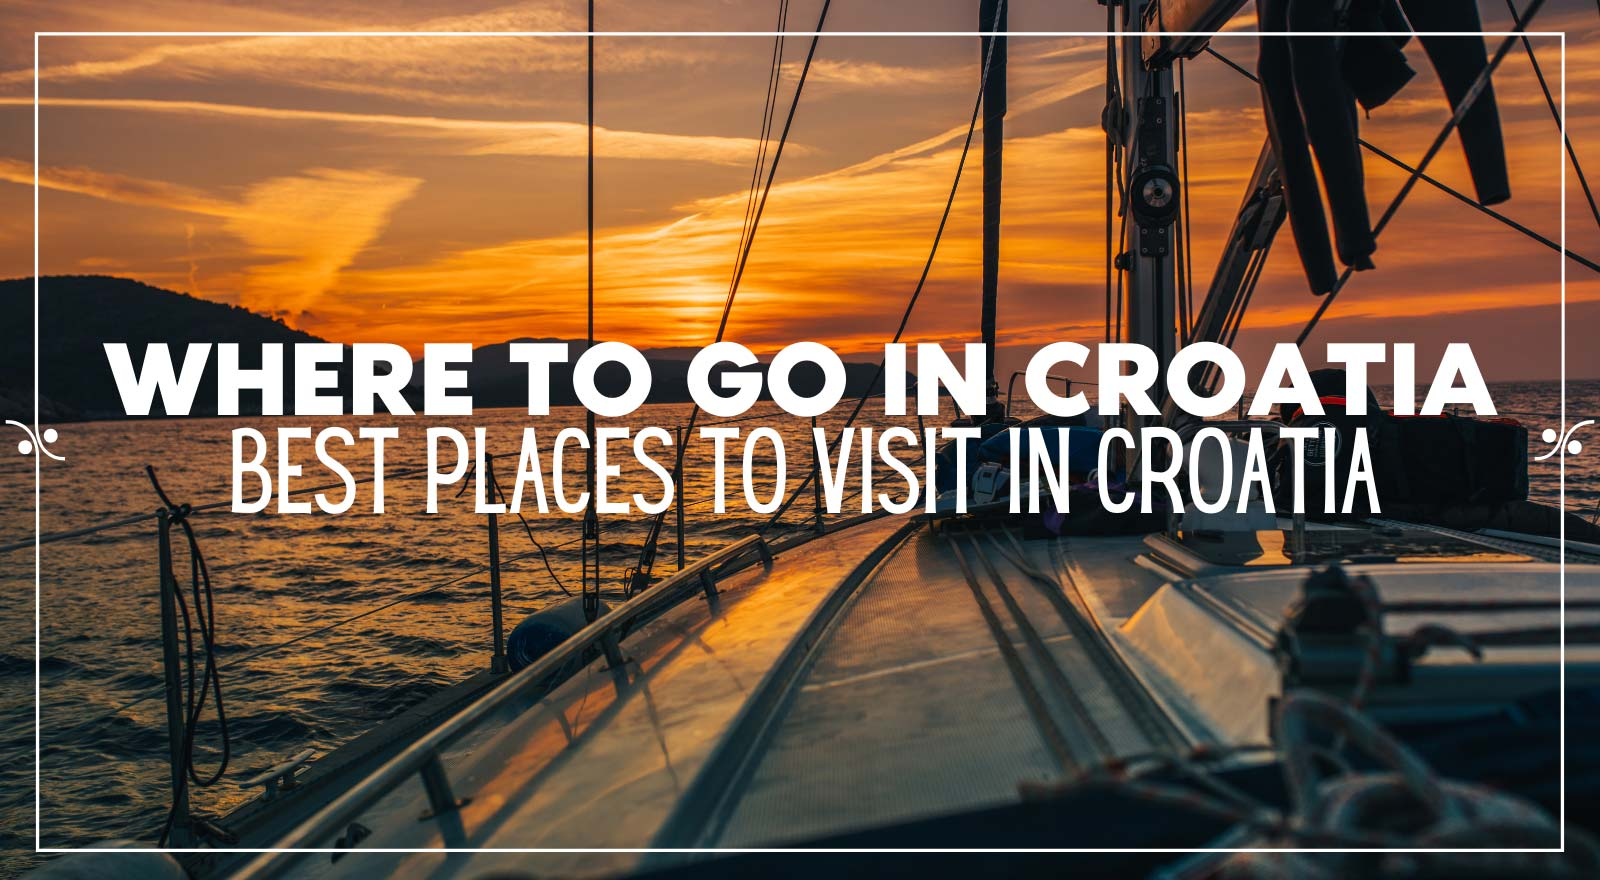 Where to go in Croatia | The best places to visit in Croatia, Illustration